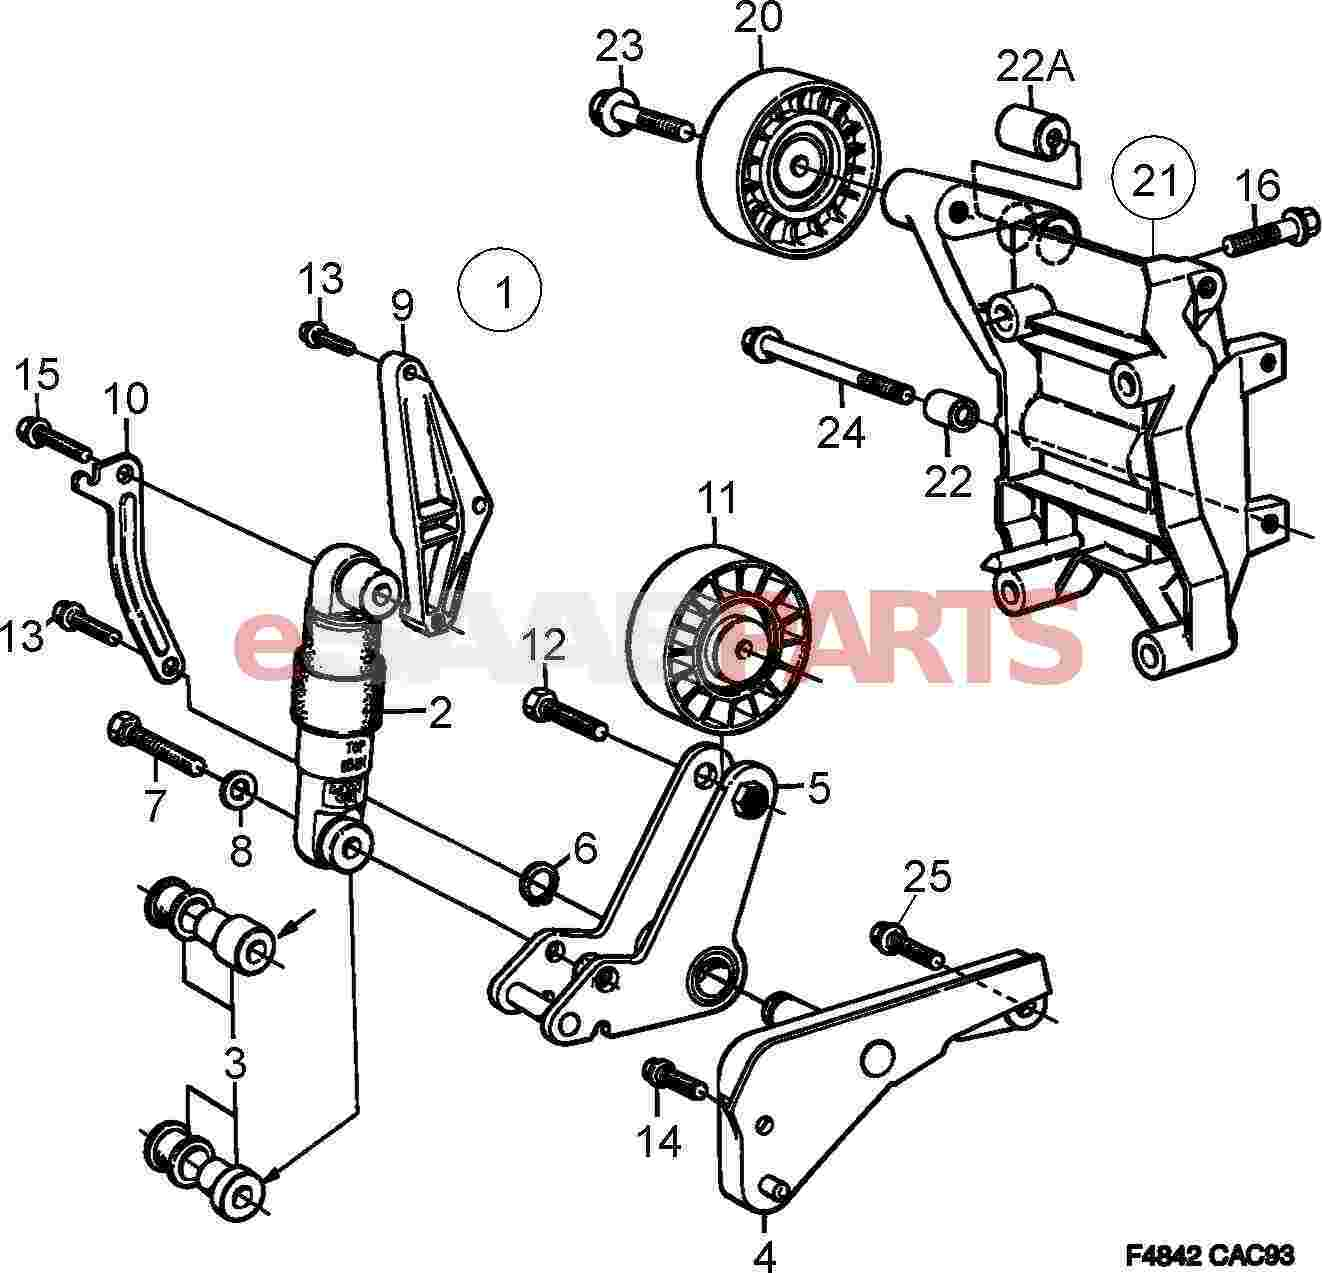 4901419  Saab Serpentine Belt Tensioner Shock - B234 9000